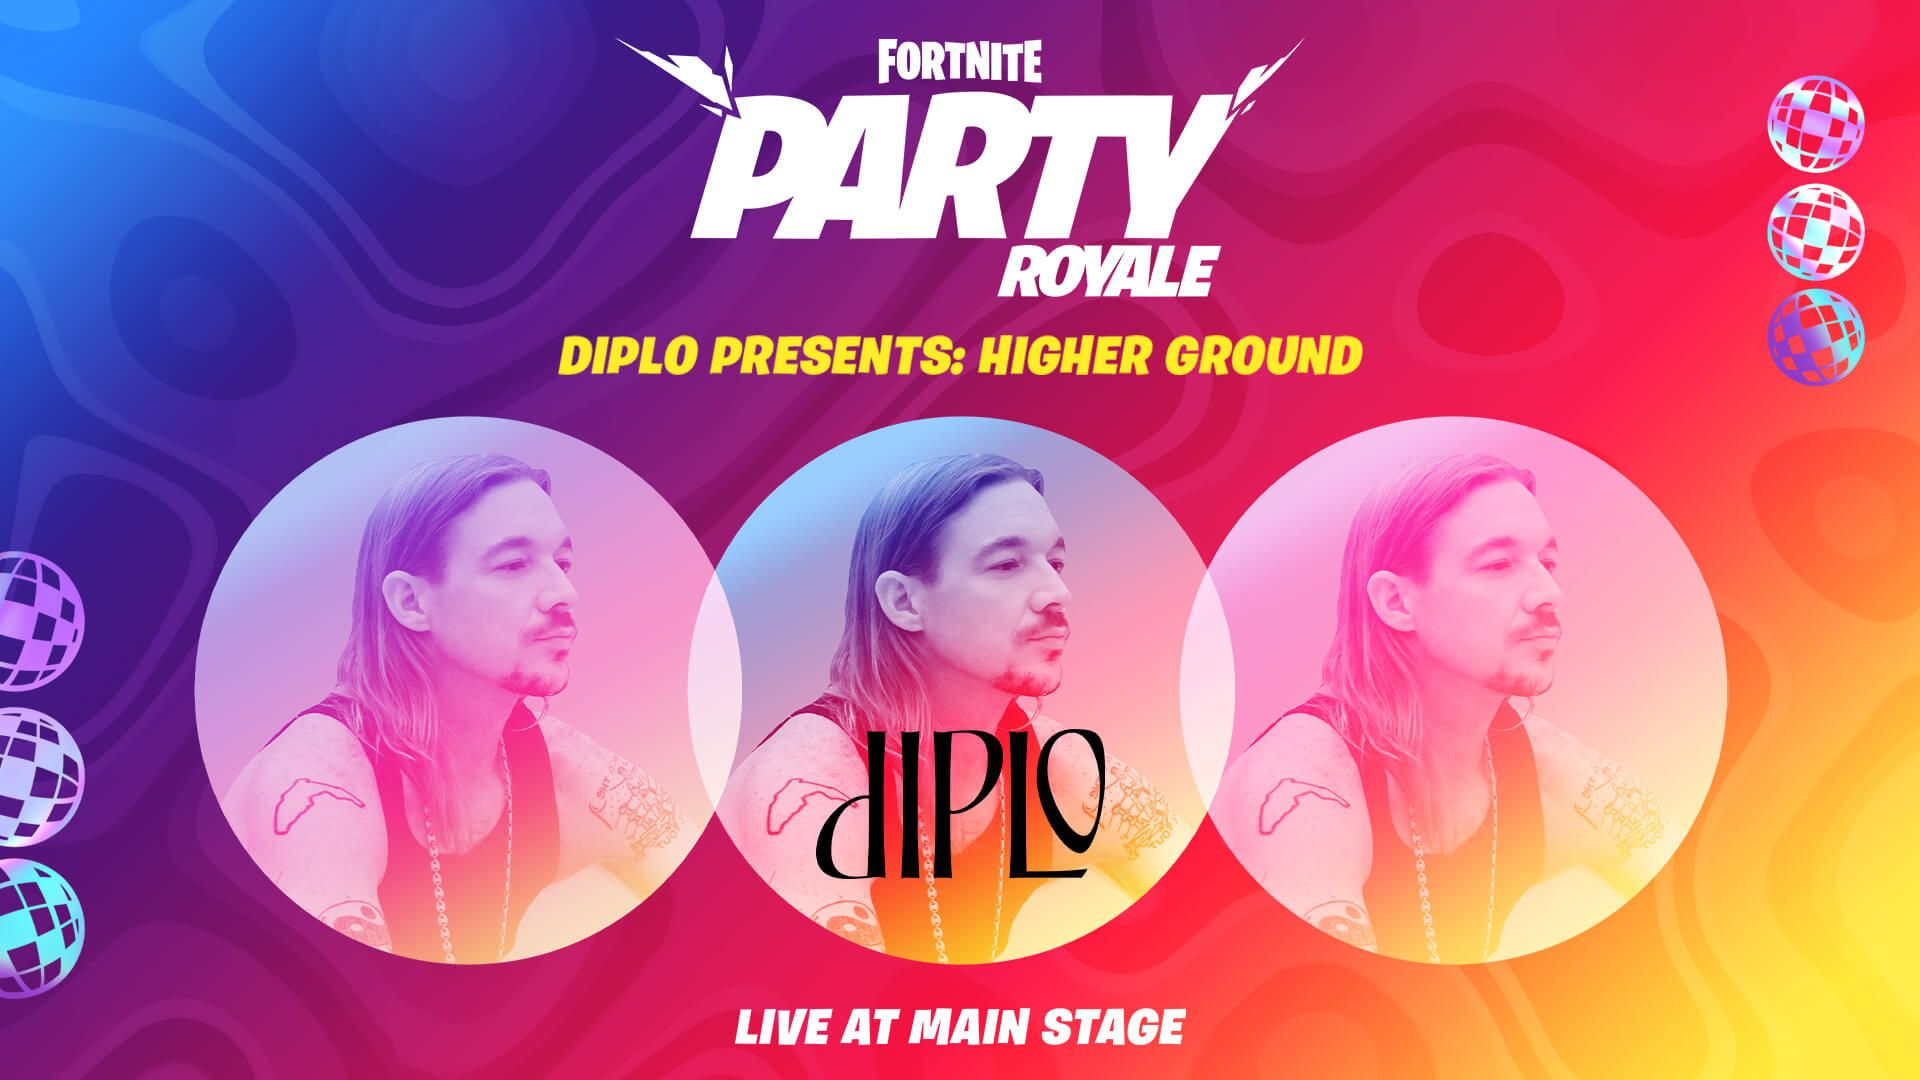 Diplo Higher Ground Fortnite Epic Games